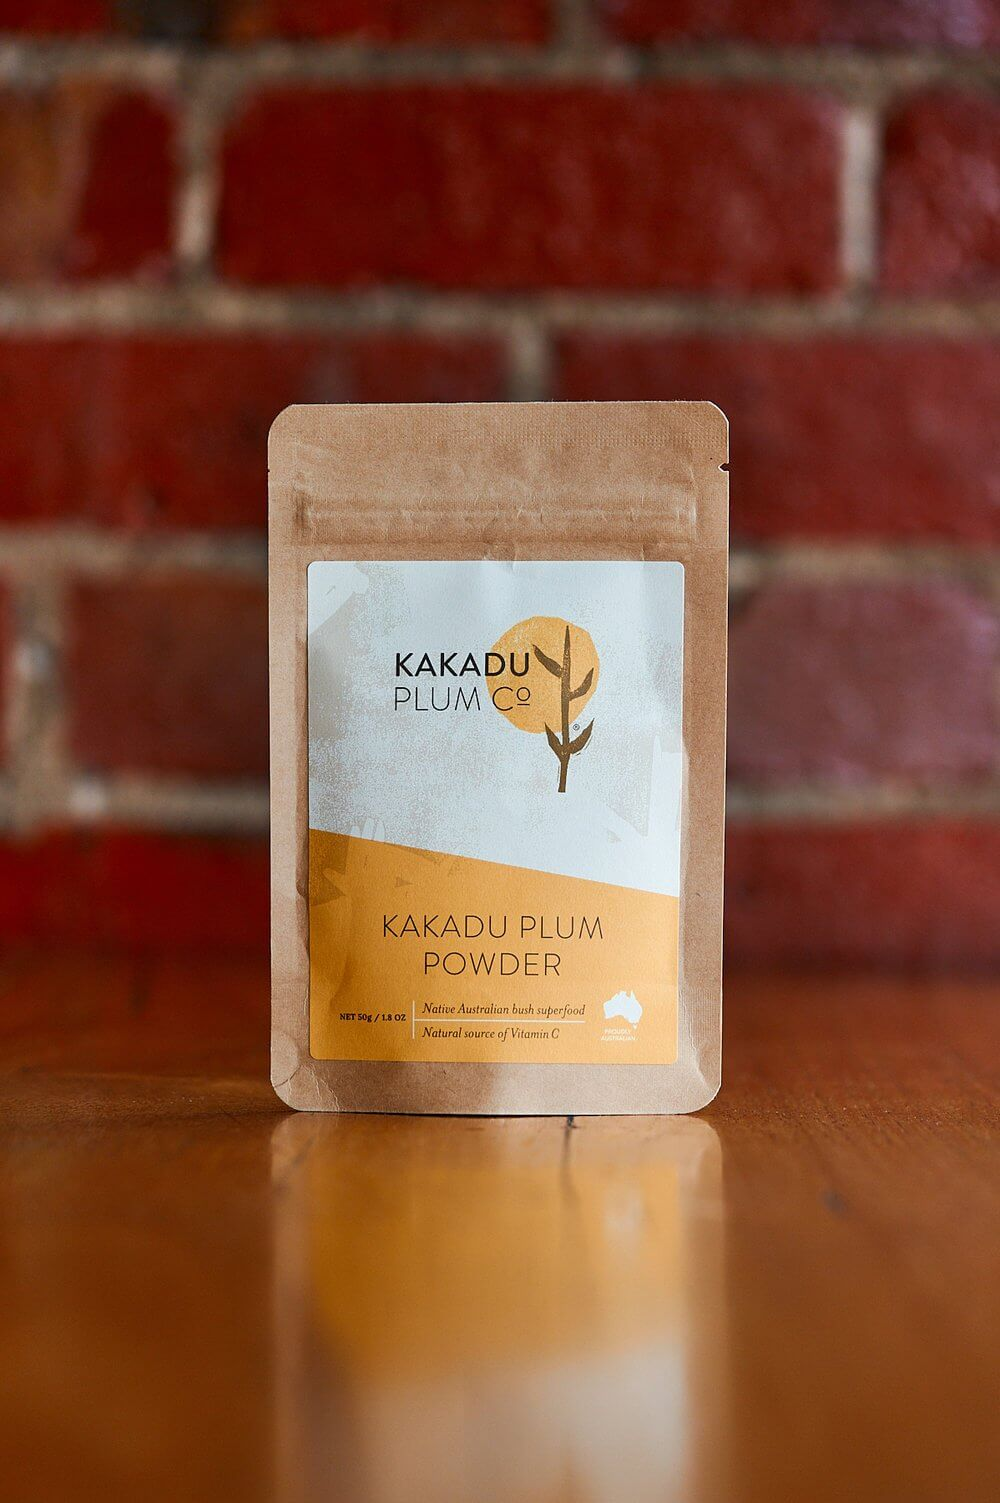 Kakadu Plum Powder - Kakadu Plum Co